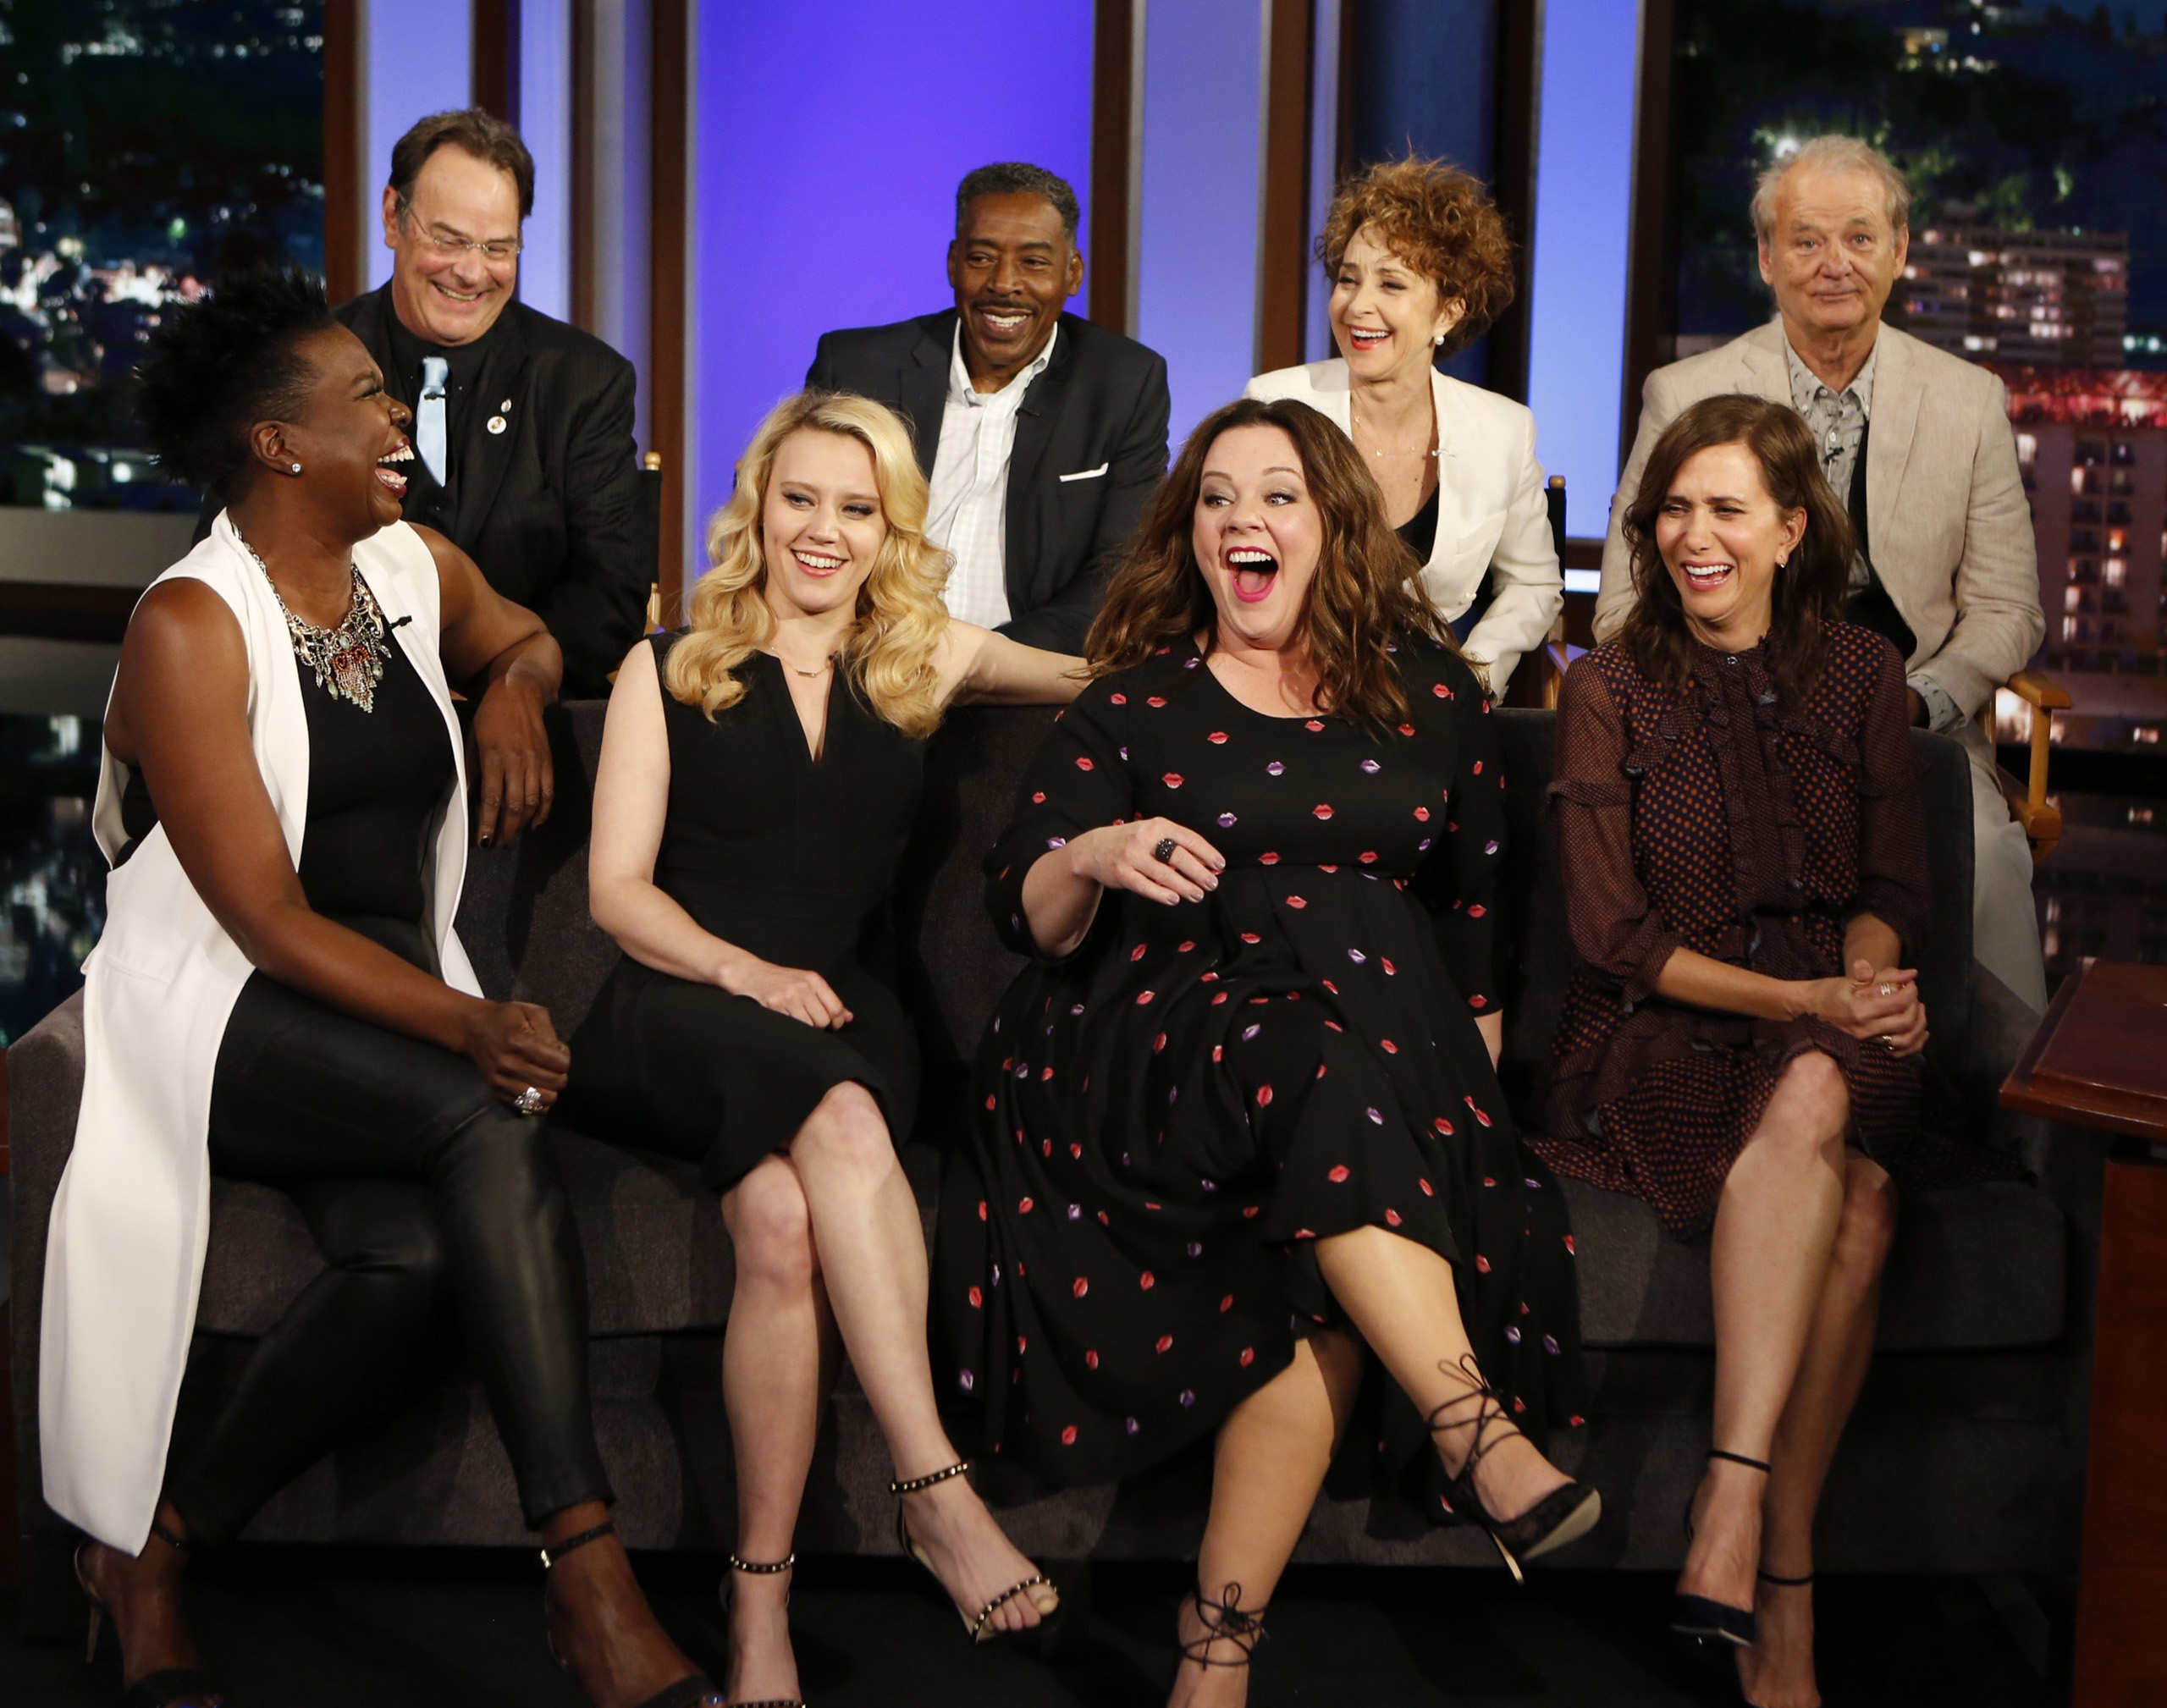 Leslie Jones, Dan Aykroyd, Kate McKinnon, Ernie Hudson, Melissa McCarthy, Annie Potts, Kristen Wiig, and Bill Murray, the cast from both  Ghostbusters  films  on the set of  Jimmy Kimmel Live.